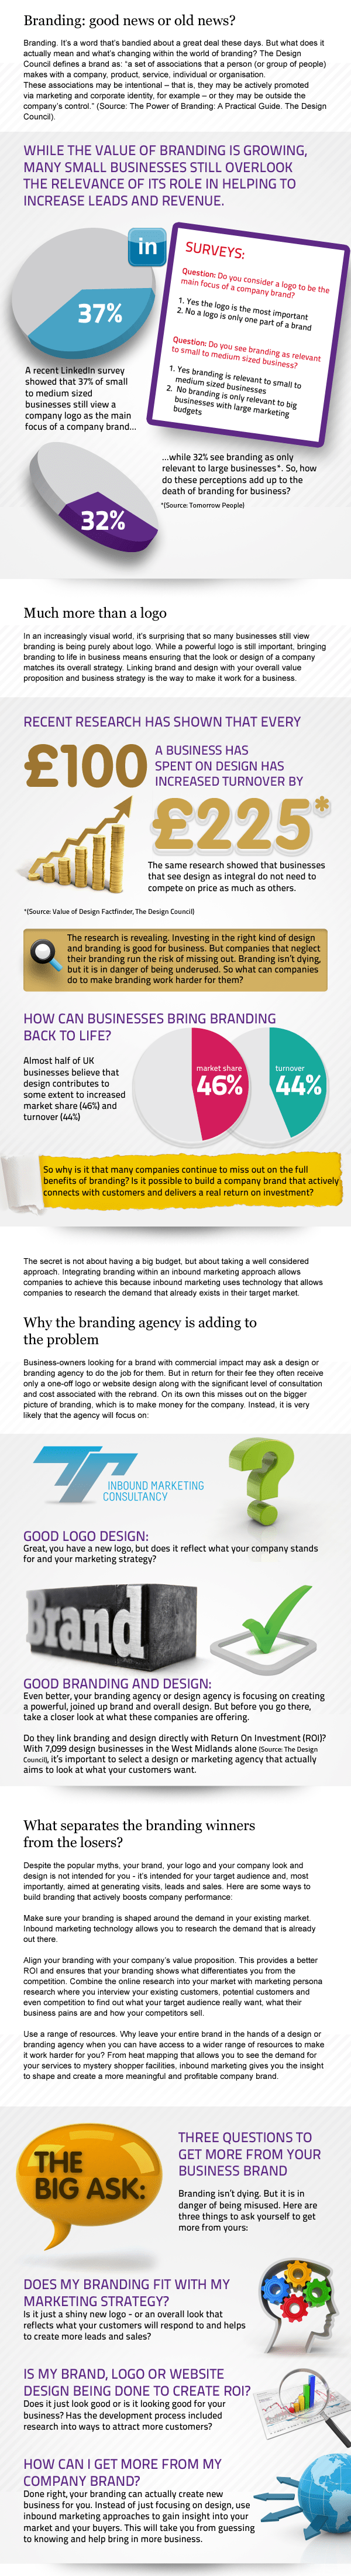 Death of Branding Infographic